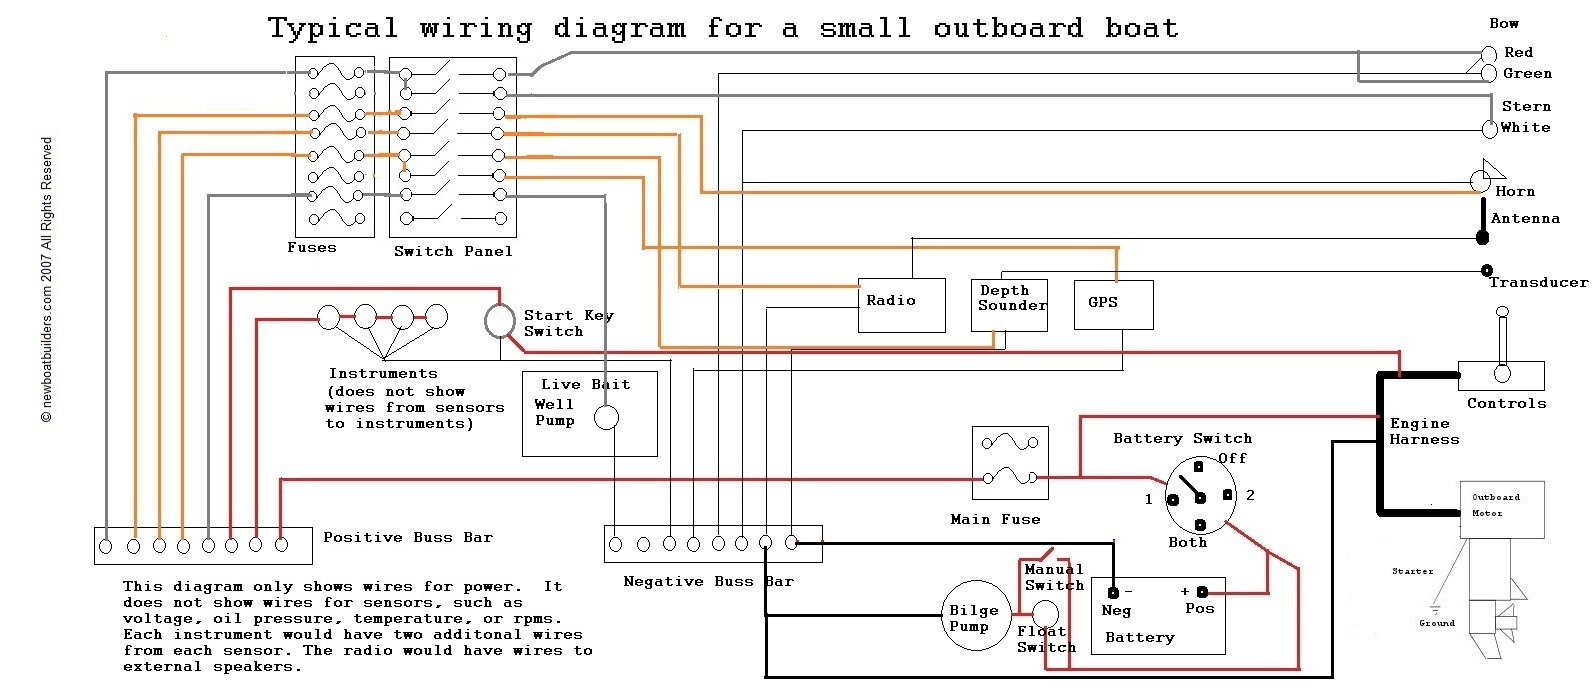 circuit6 wiring diagram for boat detailed schematics diagram